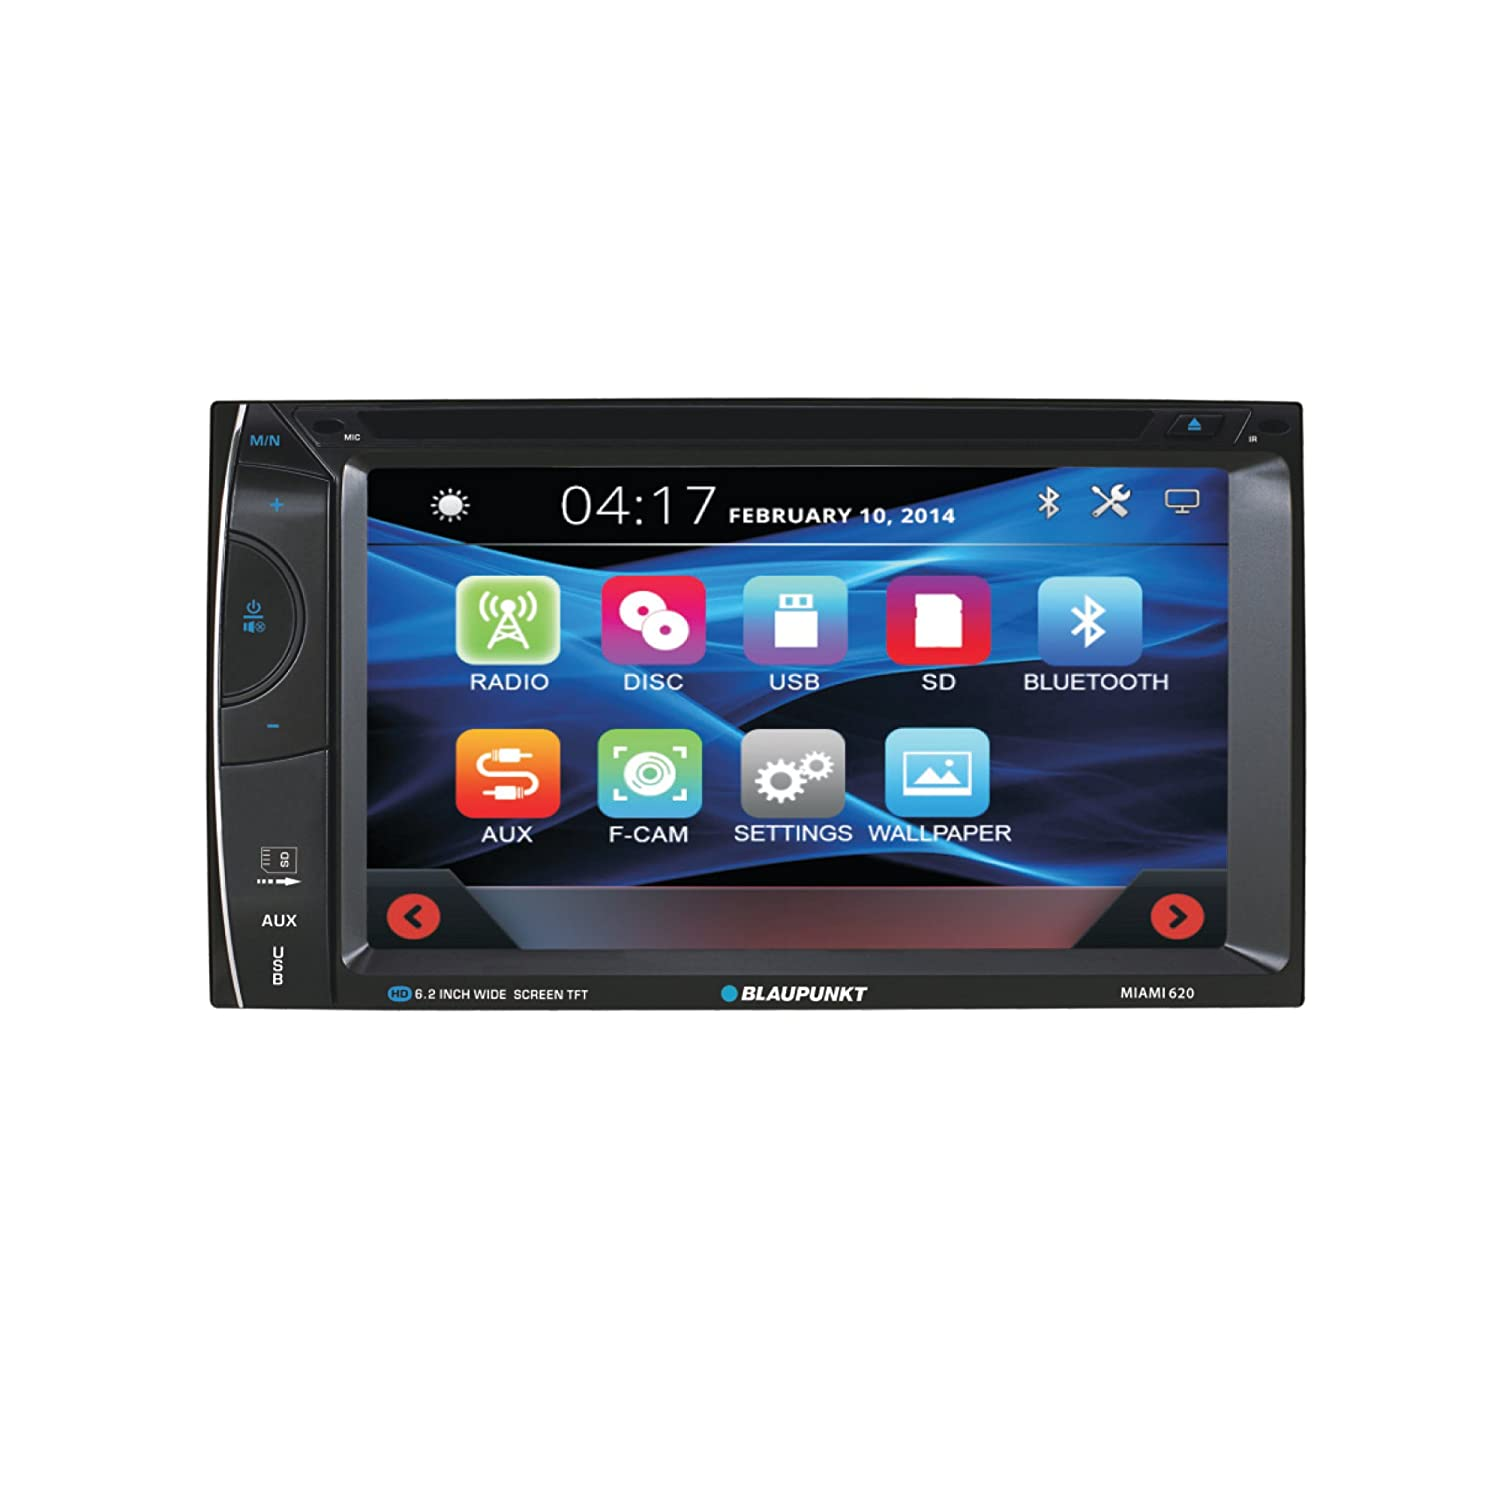 Blaupunkt Miami 620 62 Inch Touch Screen Multimedia Car Your System Diagram Page 10 Audio Diymobileaudiocom Stereo Receiver With Bluetooth And Remote Control Cell Phones Accessories